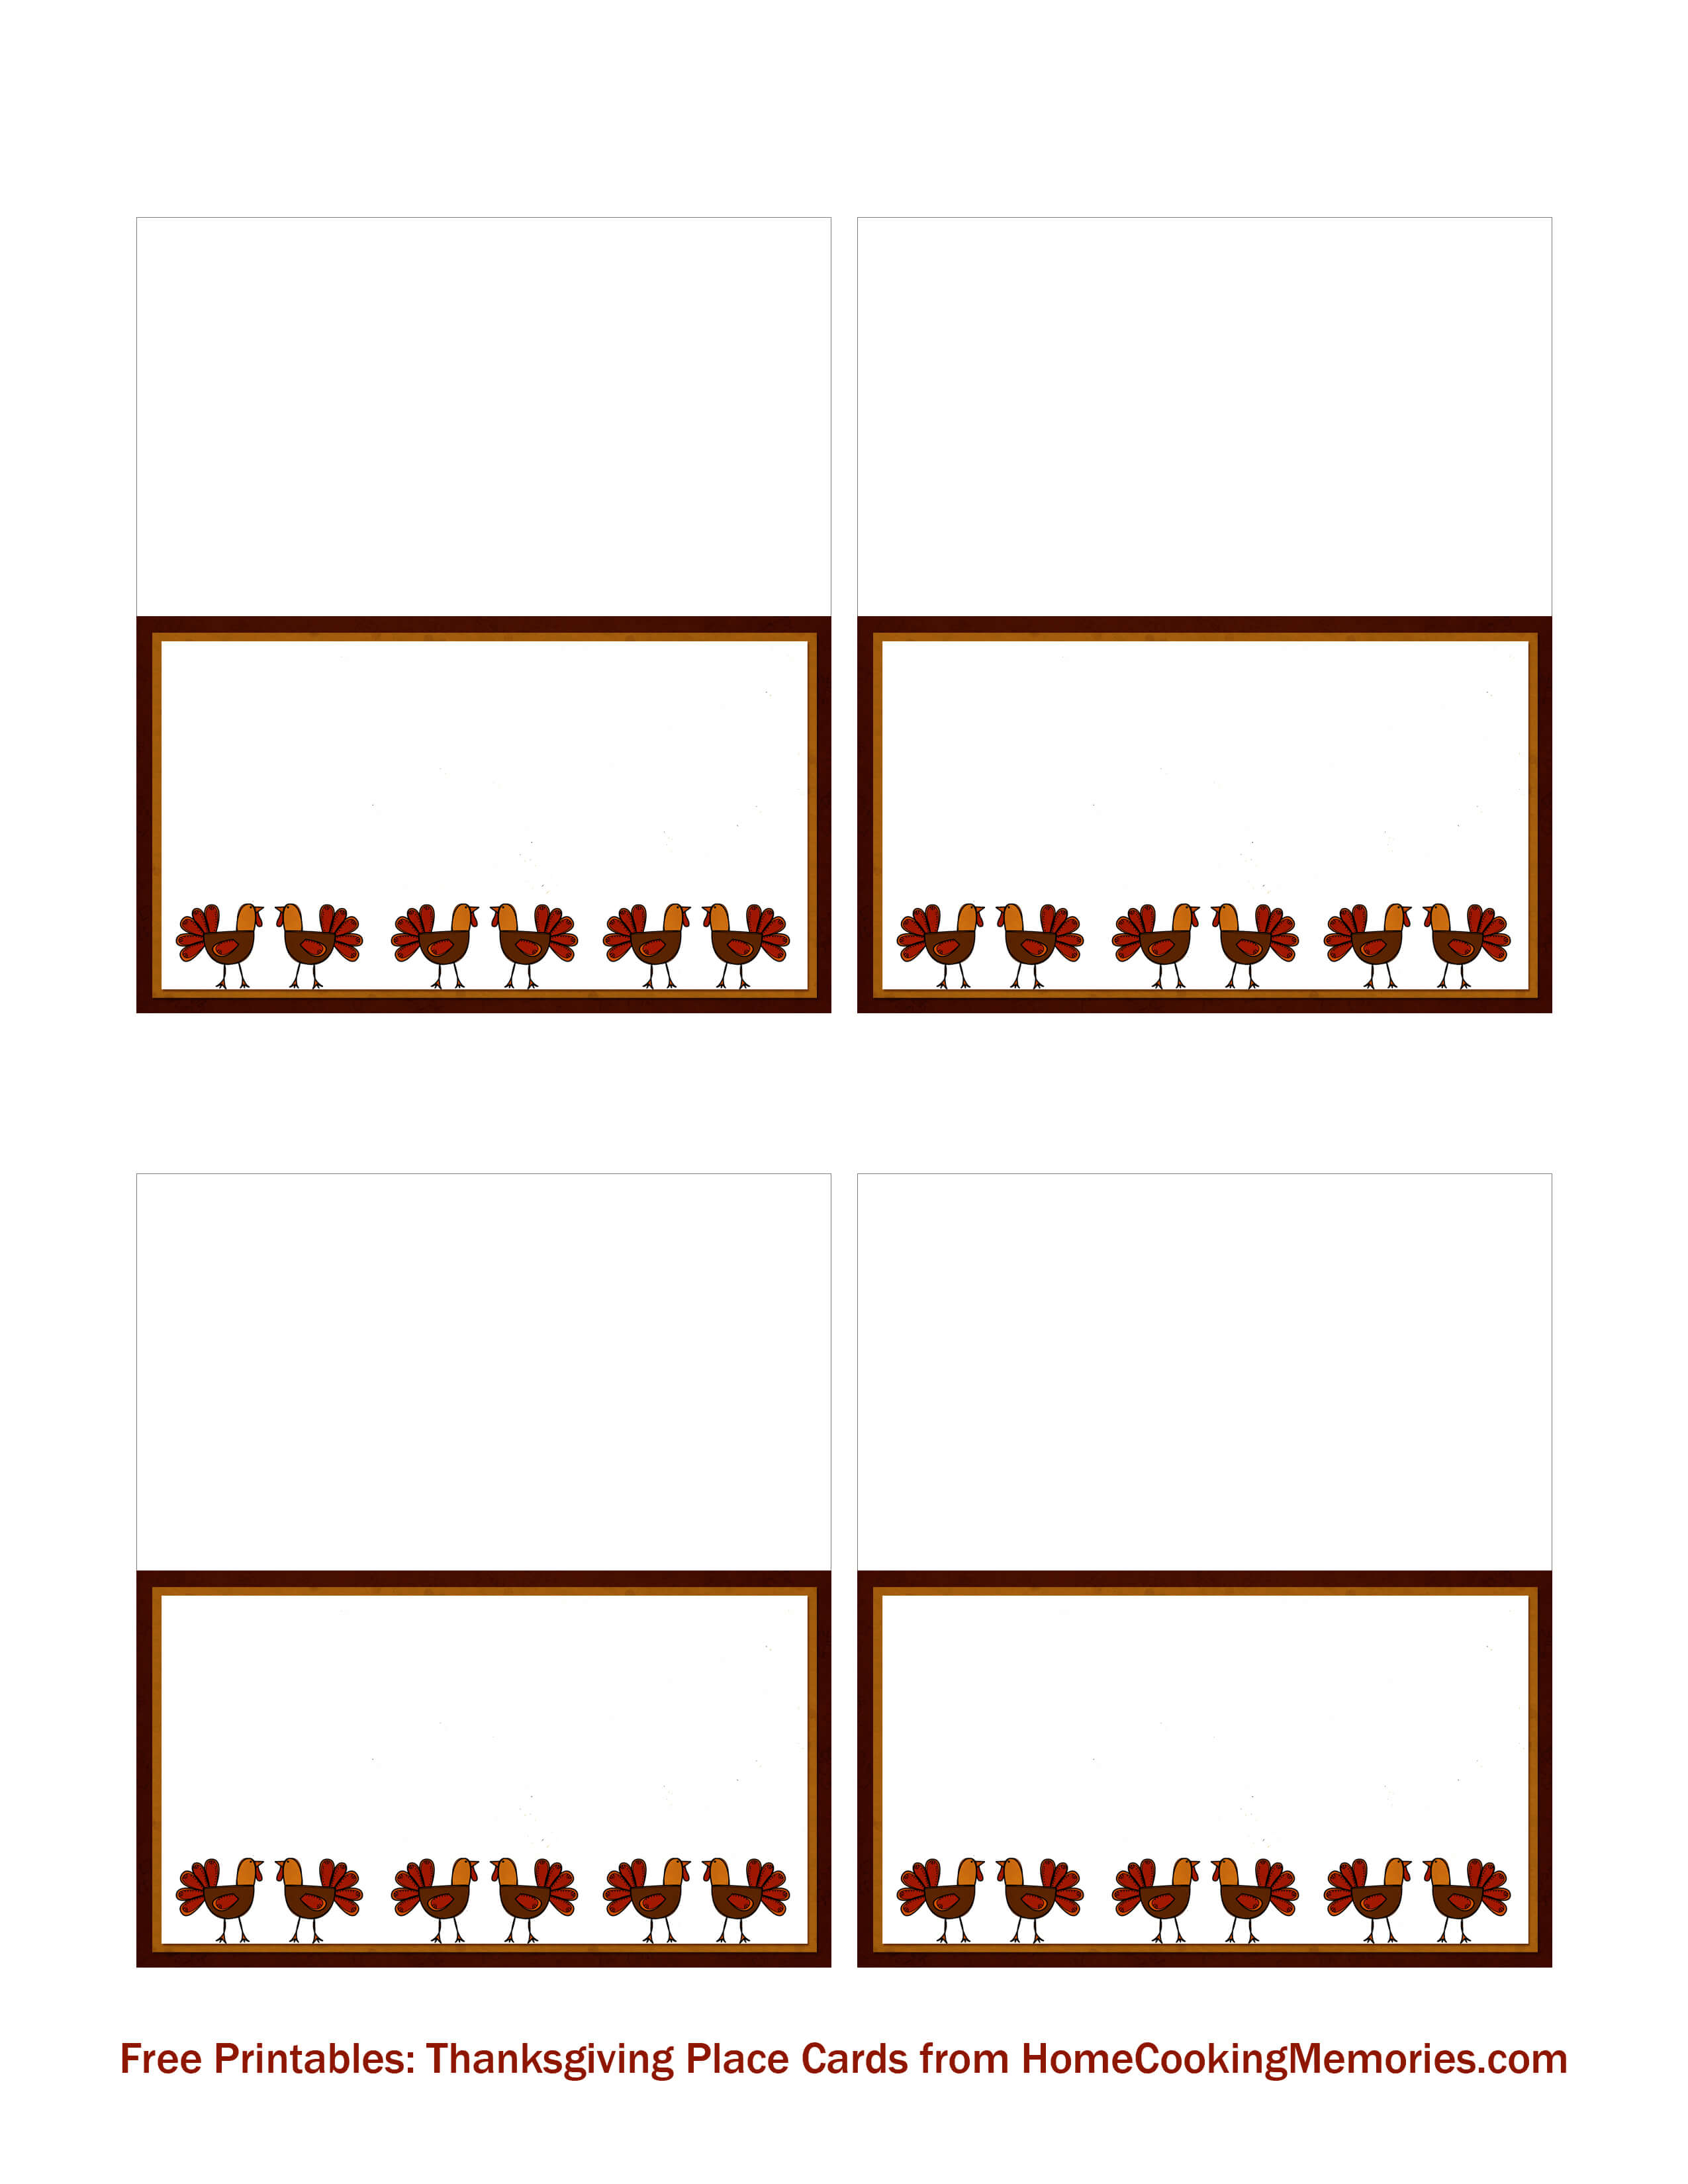 Free Printables: Thanksgiving Place Cards - Home Cooking intended for Table Name Cards Template Free